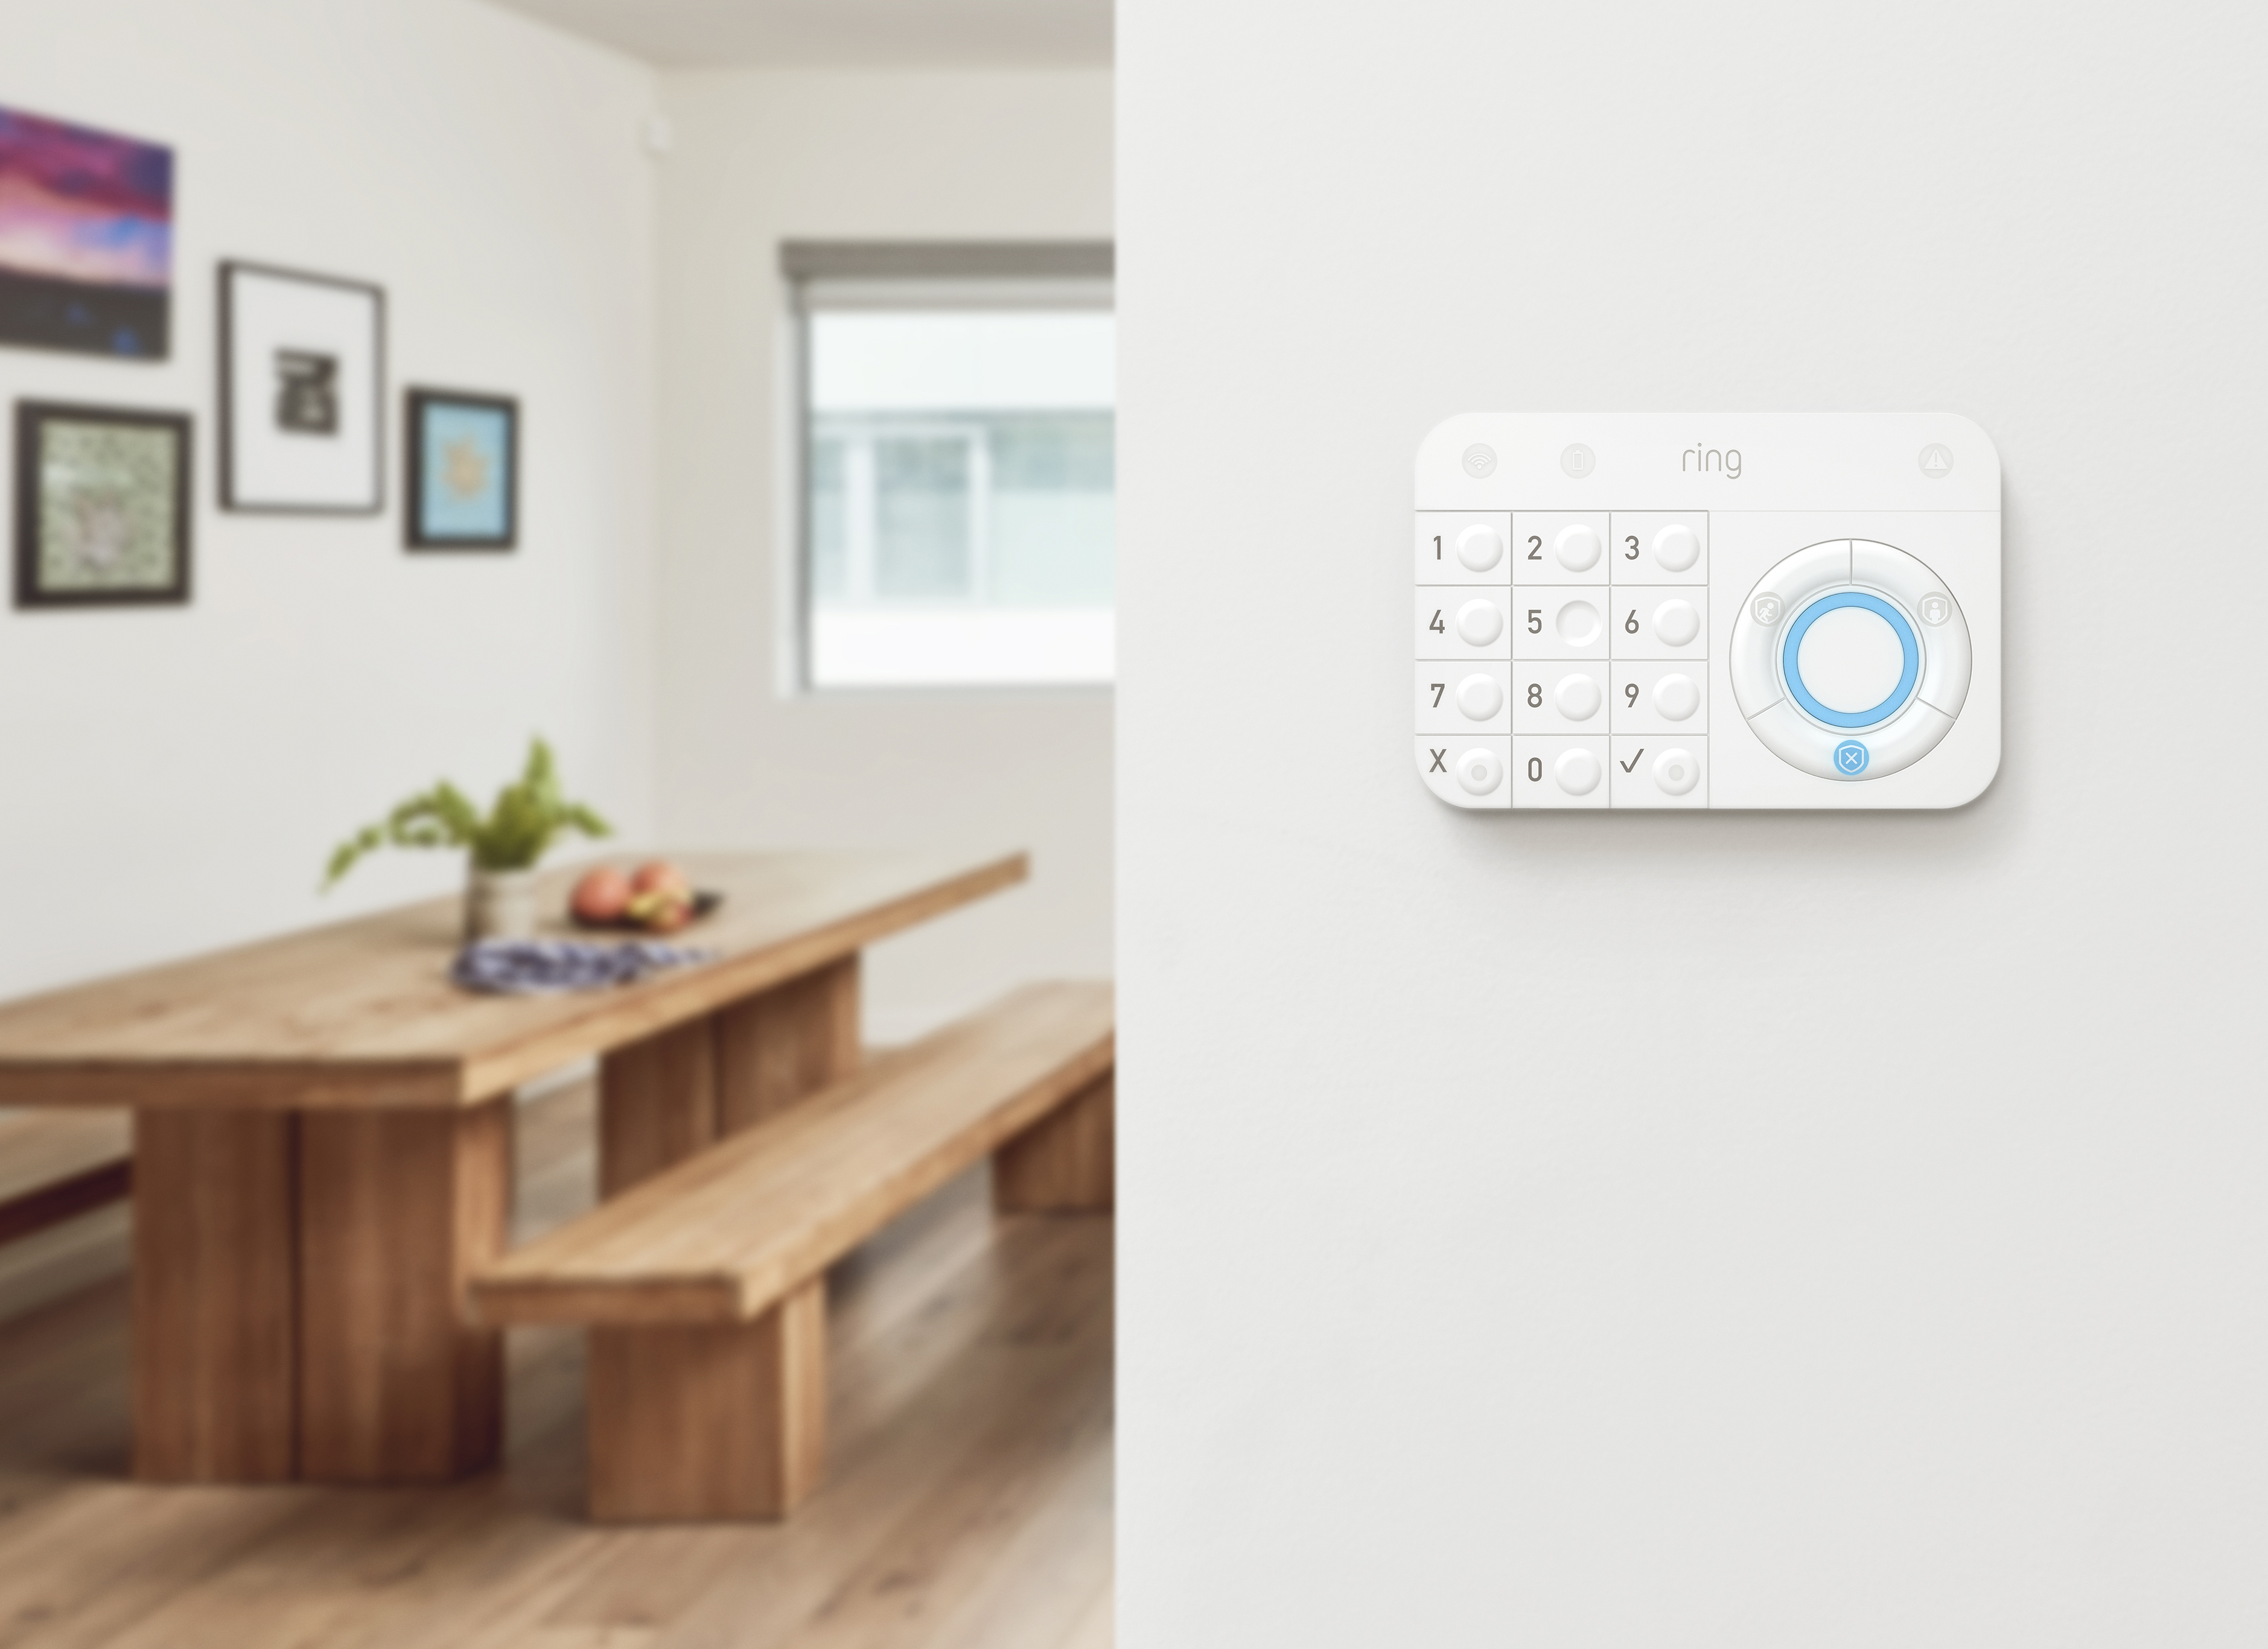 Ring's first DIY home security system costs only $199